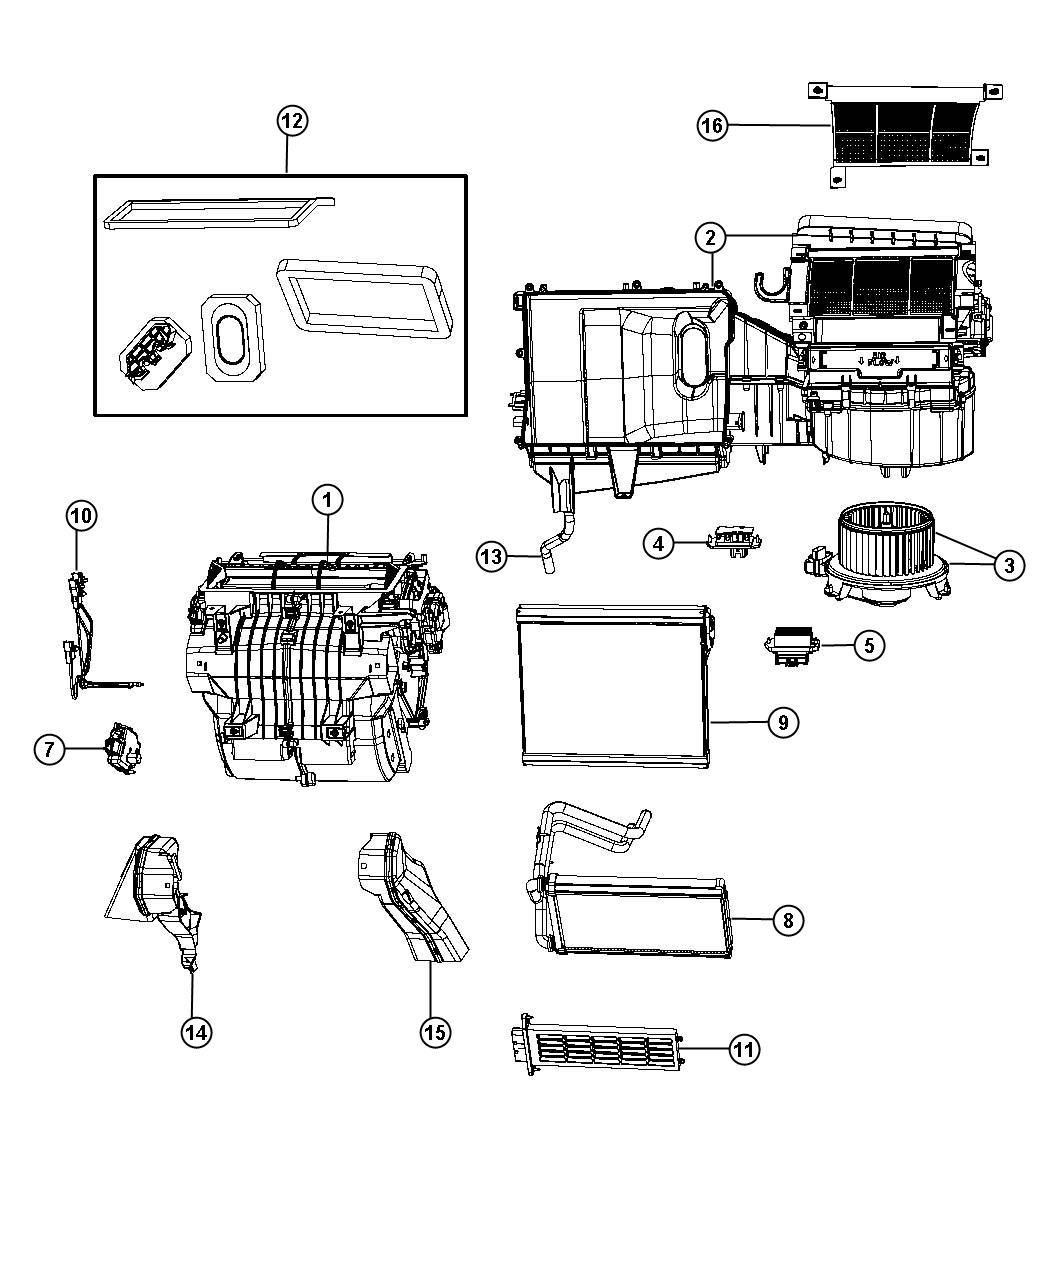 Dodge Ram Heater Fan Fuse Box Locations Wire Data Schema 1999 2500 Diagram 08 Avenger Wiring Free Engine 2001 1500 V6 Cab Panel Durango Location